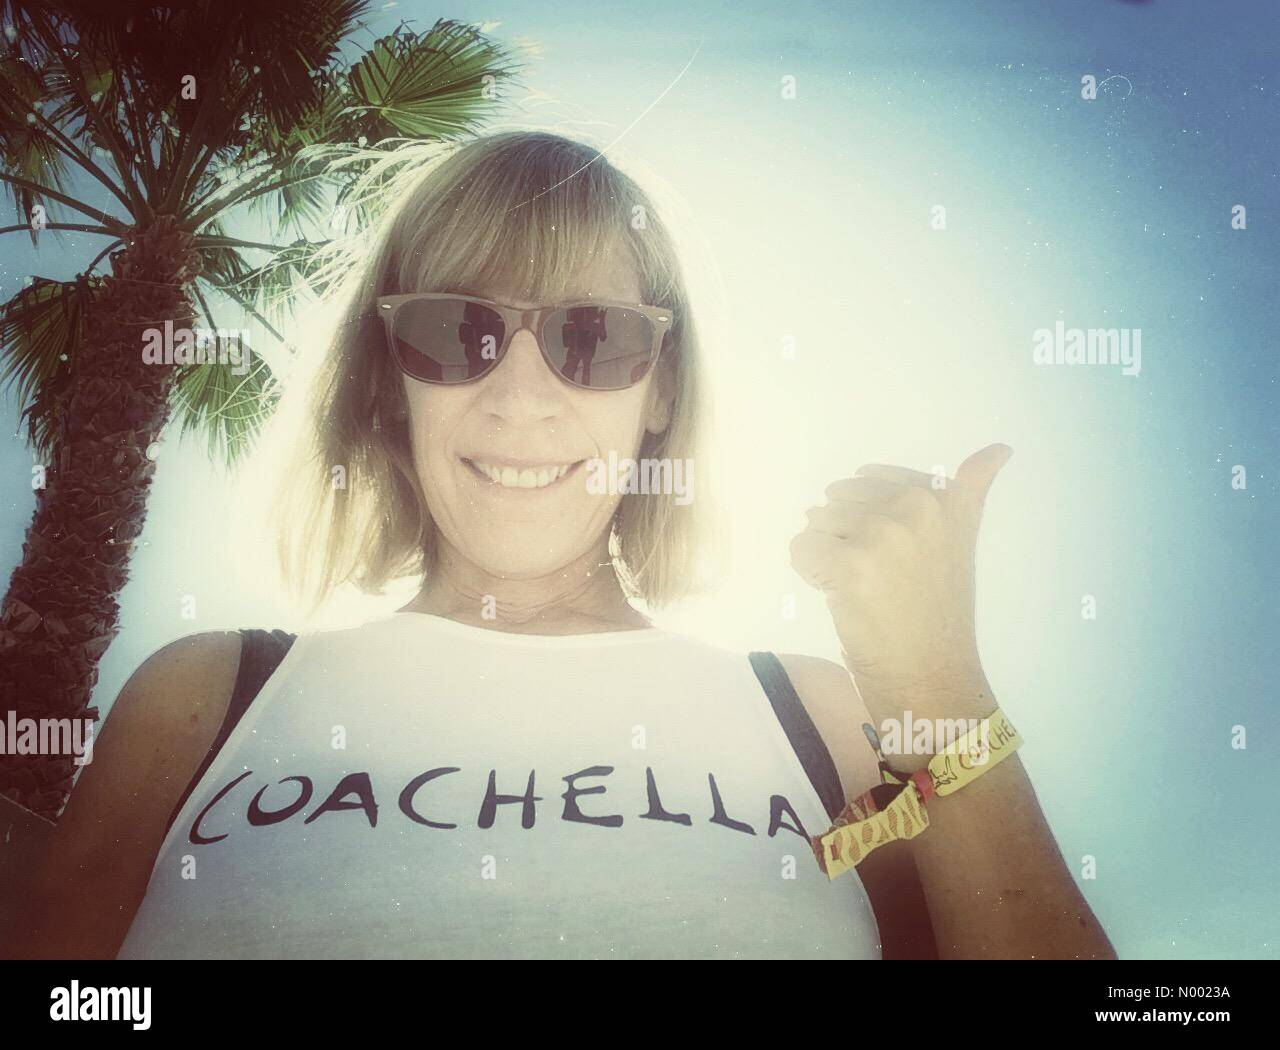 Indio, Kalifornien USA zeigt 9. April 2015 Selfie, bin ich bereit für das Coachella Valley Music and Arts Festival, Stockbild